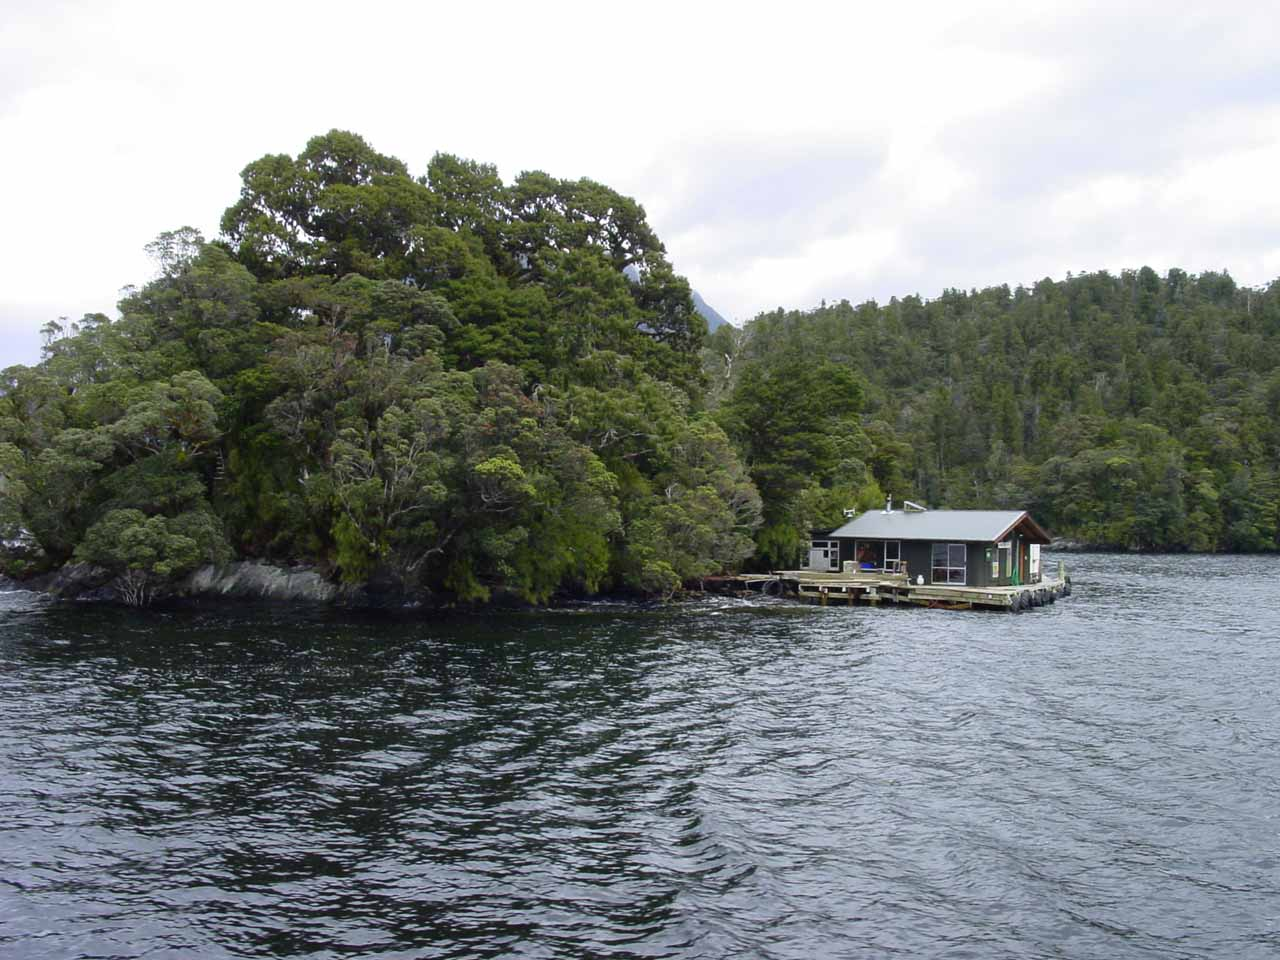 This built-up shelter well into the Doubtful Sound struck me as strange for I knew not what it was there for nor who would live there in apparent isolation